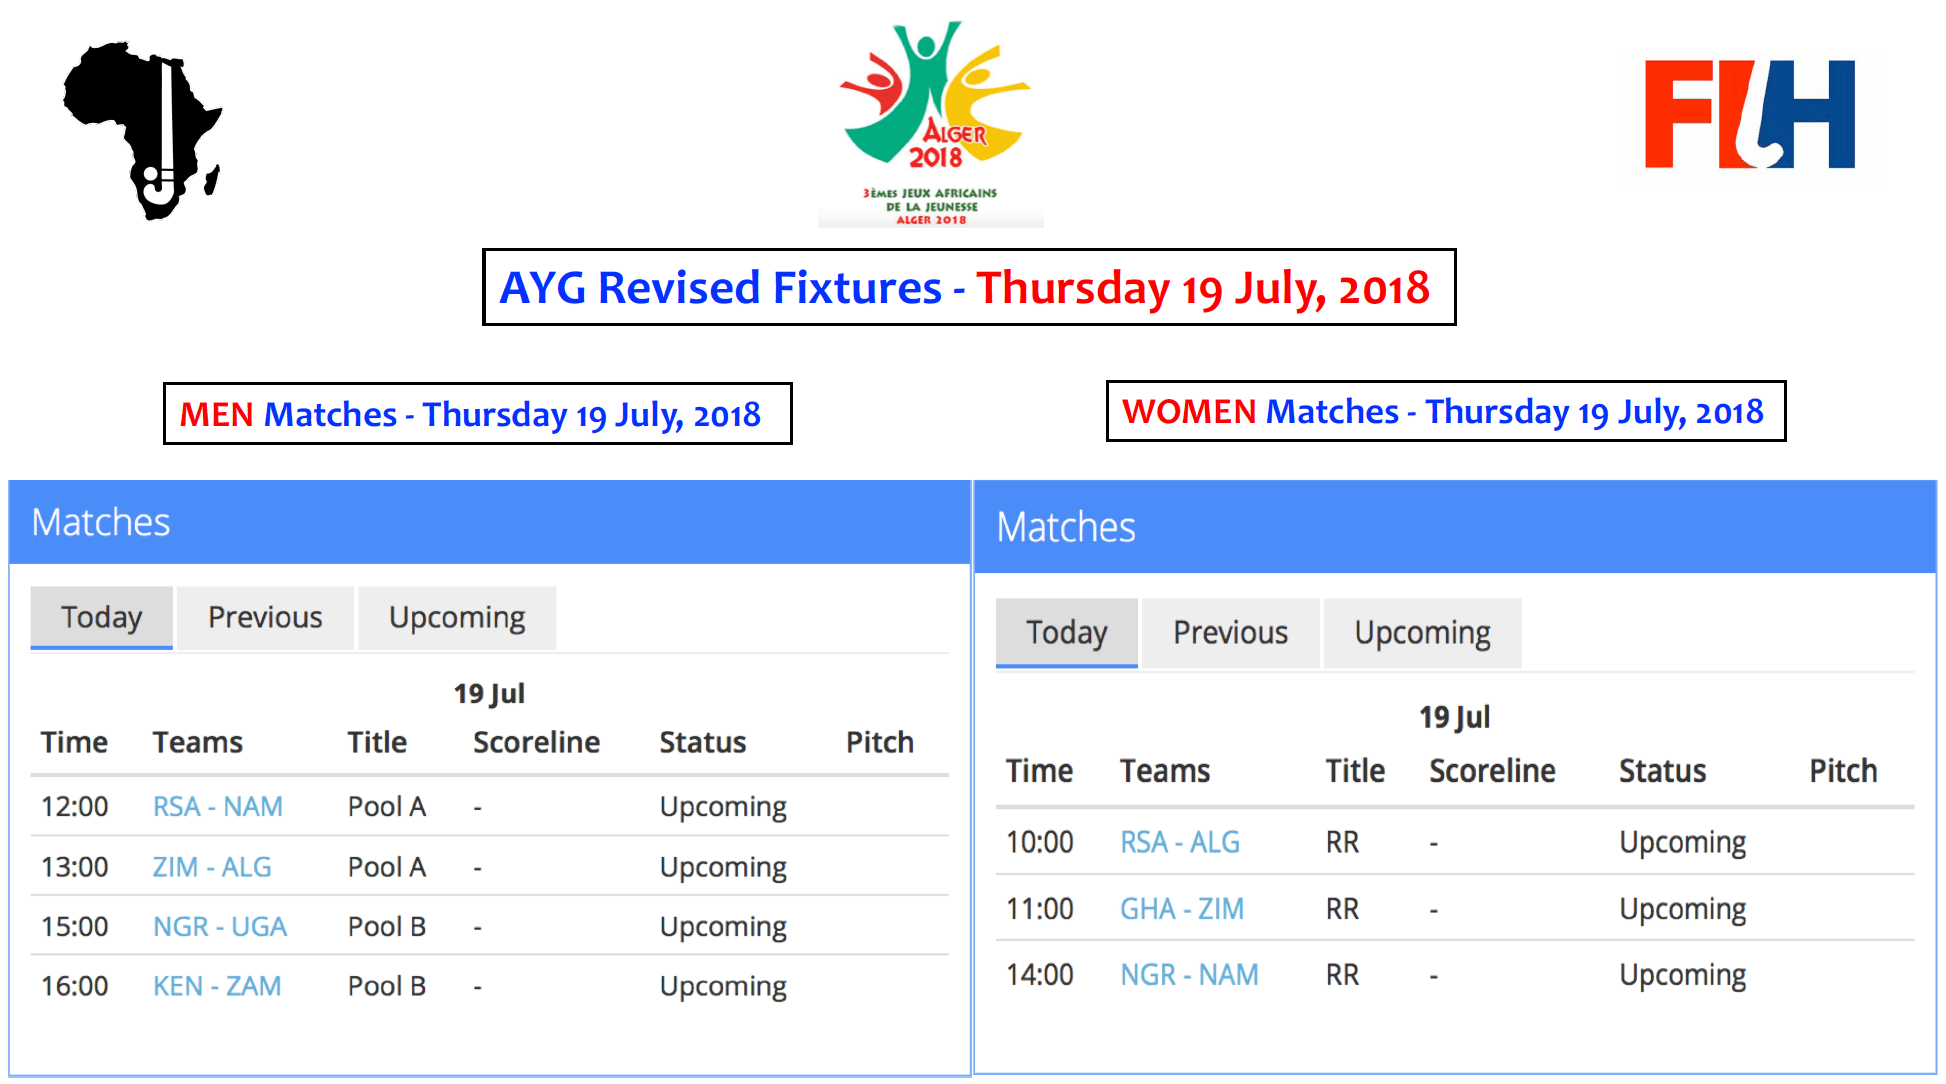 AYG Revised Fixtures - Thursday 19 July, 2018